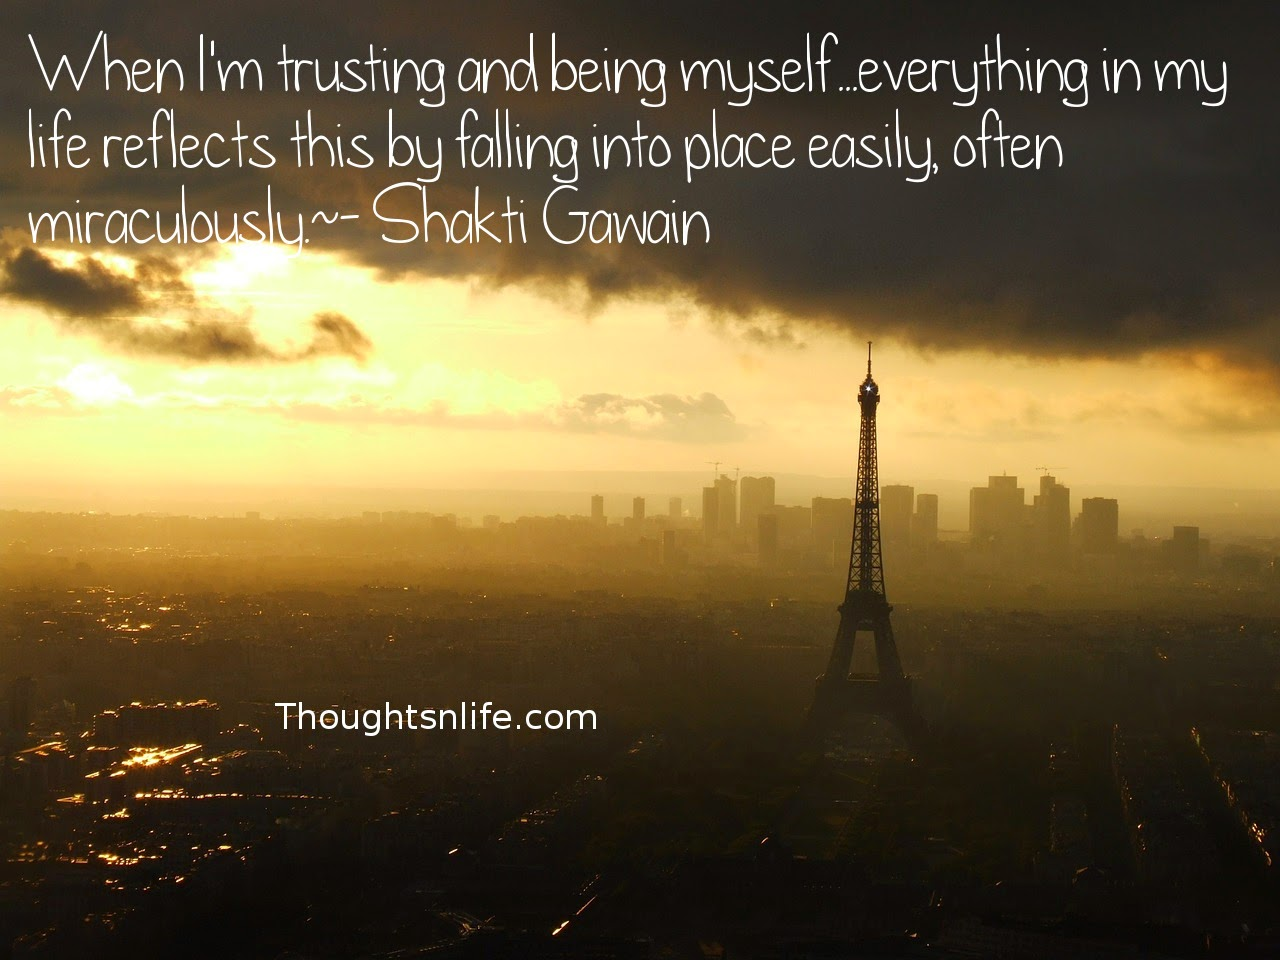 Thoughtsnlife.com: When I'm trusting and being myself... everything in my life reflects this by falling into place easily, often miraculously. - Shakti Gawain